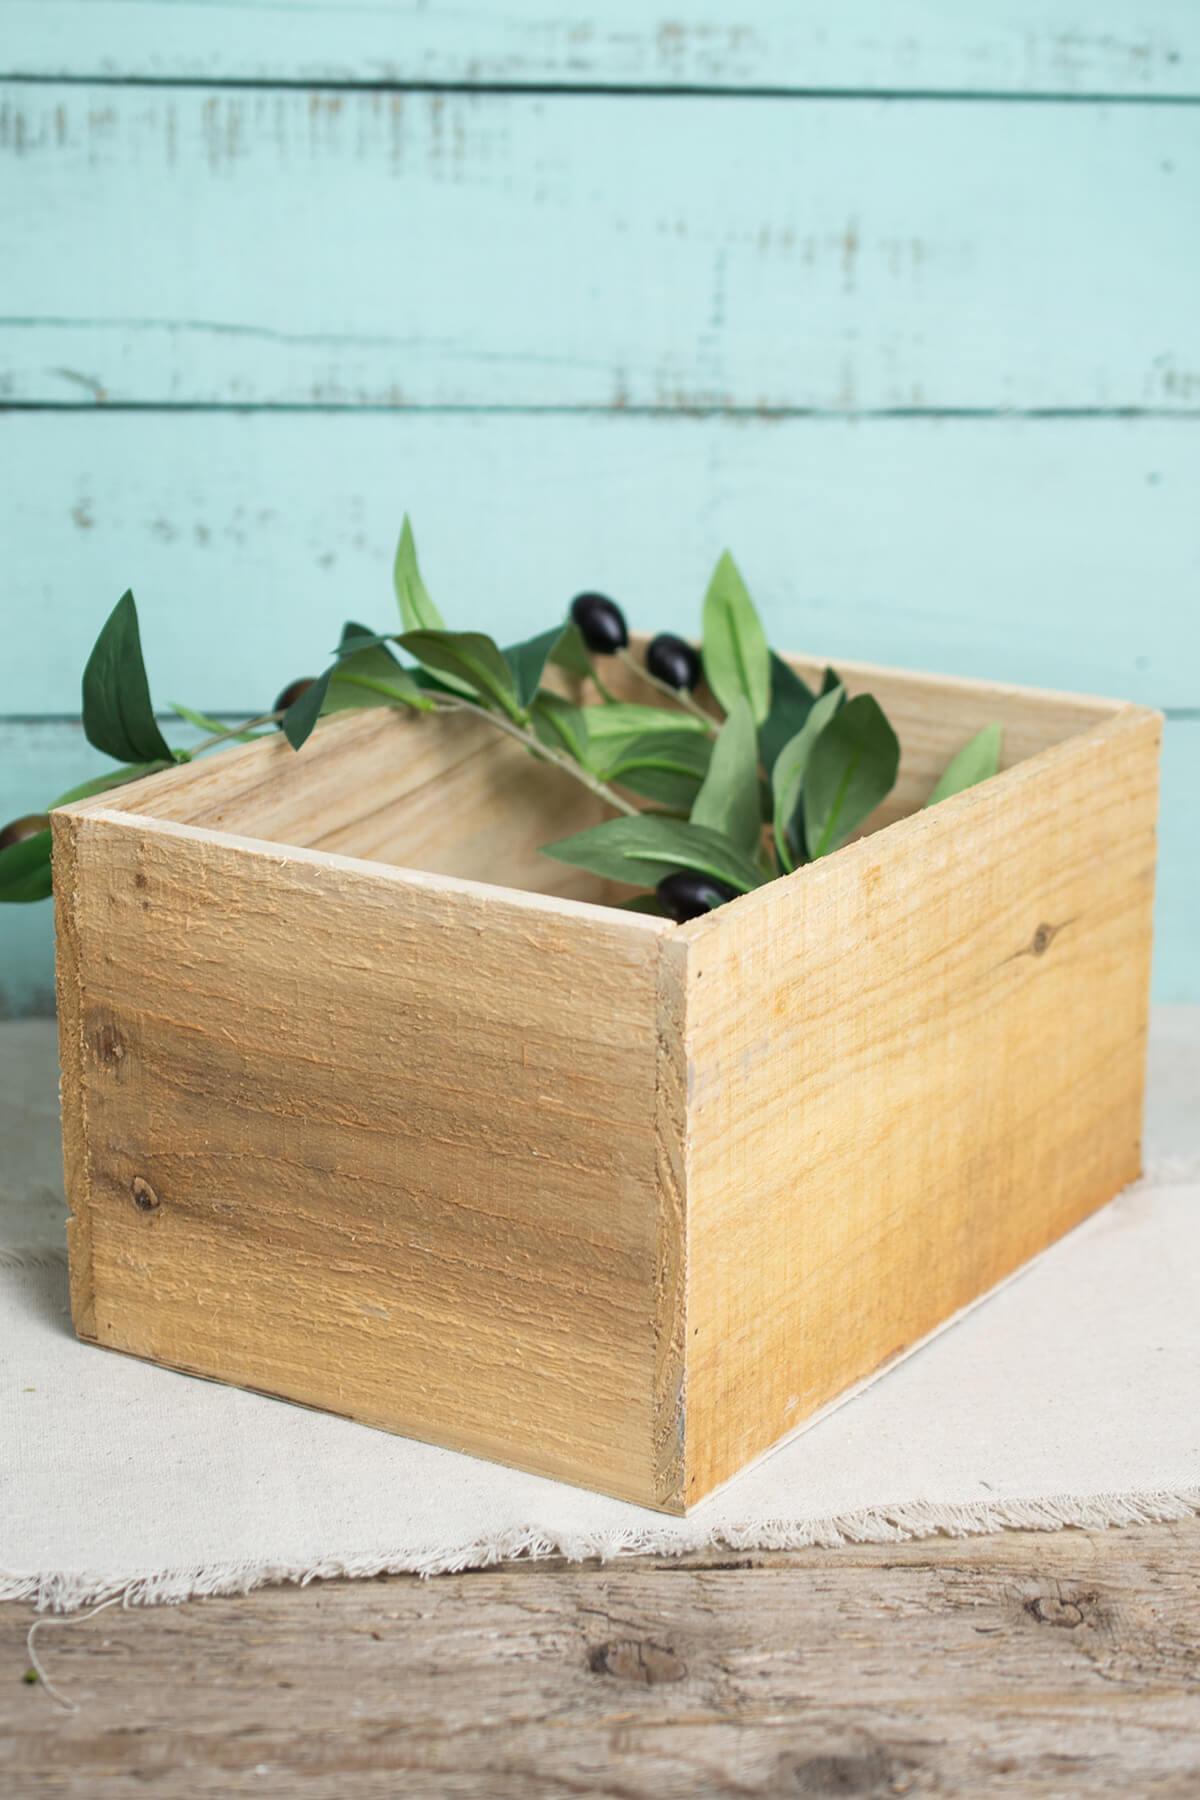 Handmade Wood Planter Boxes 10 X 7 5